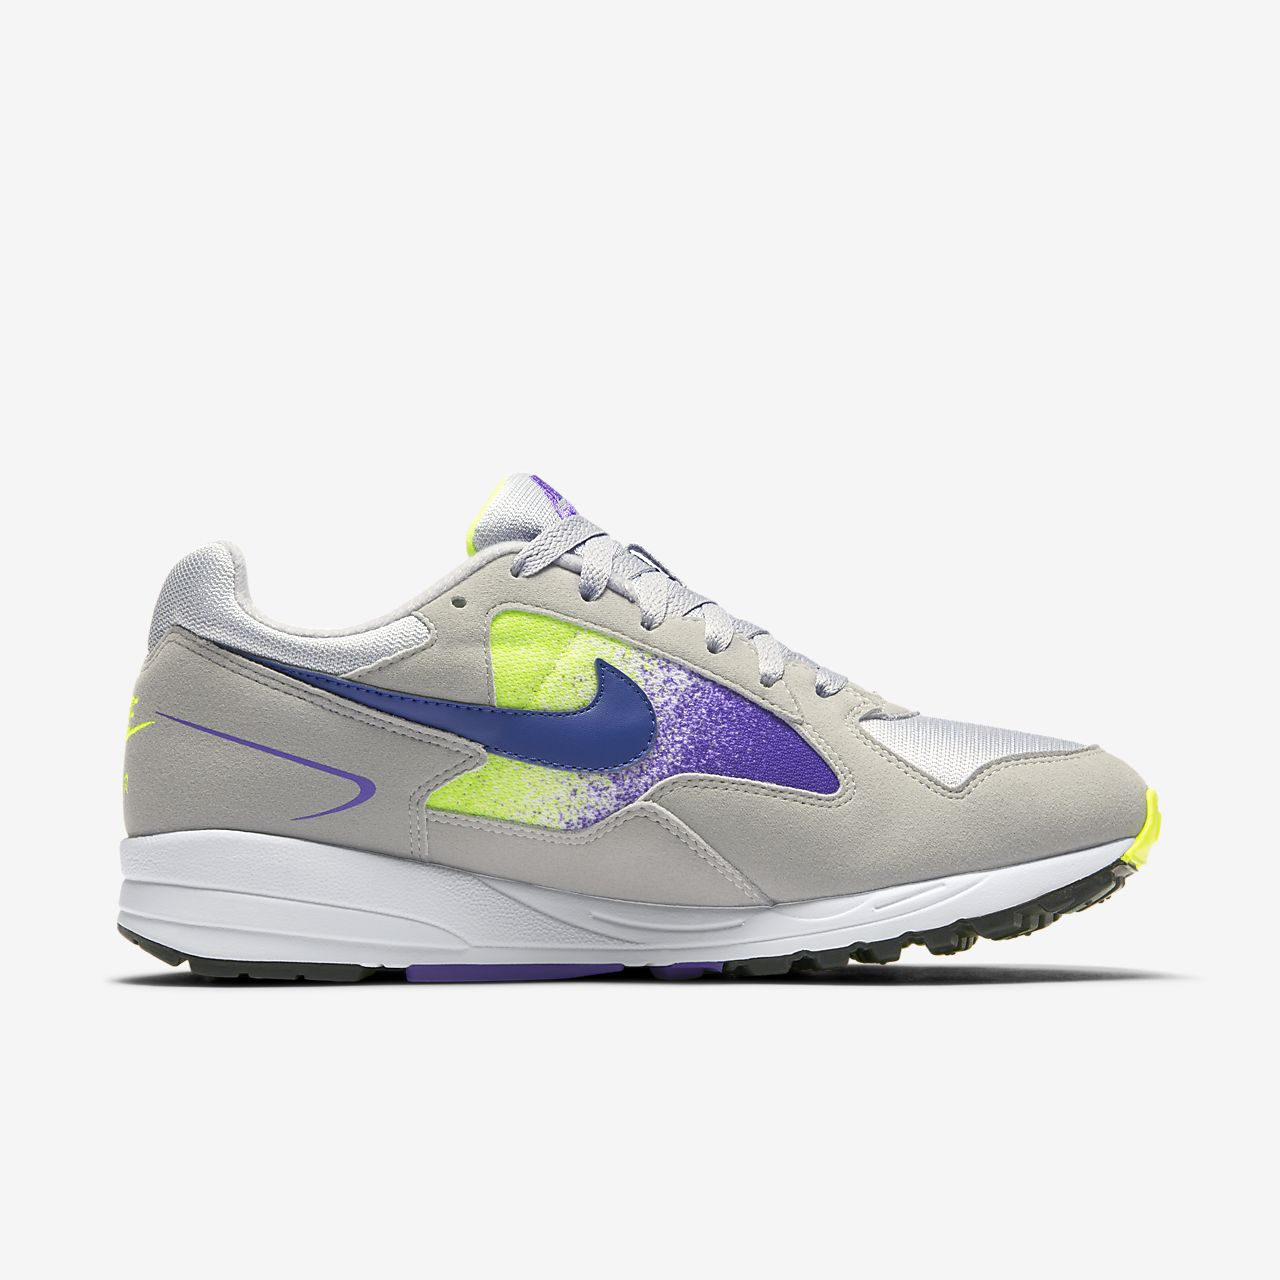 ec5bf87a91f48f Nike Air Skylon II Men s Shoe. Nike.com GB